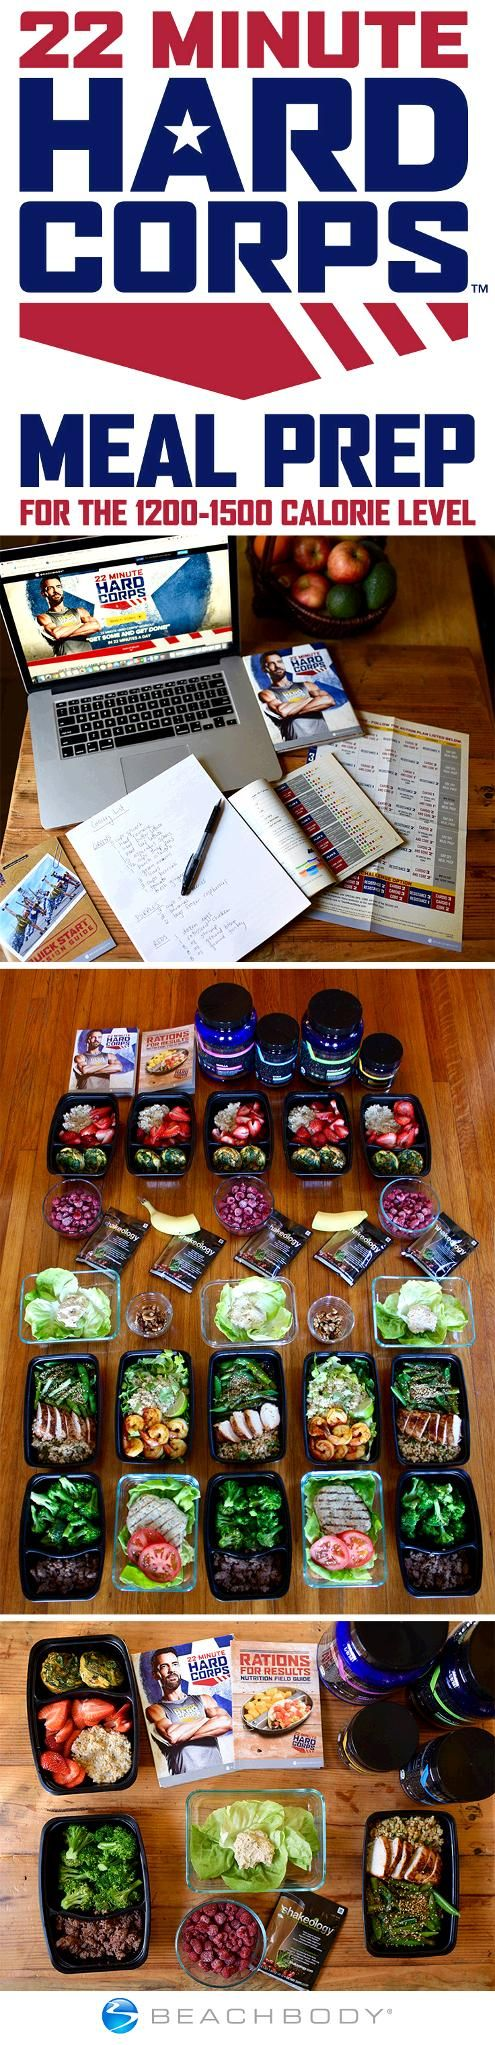 Now that you've committed to building a Boot Camp Body with 22 Minute Hard Corps, use this meal prep plan to set yourself up for a week of healthy eating! // beachbody // beachbody blog